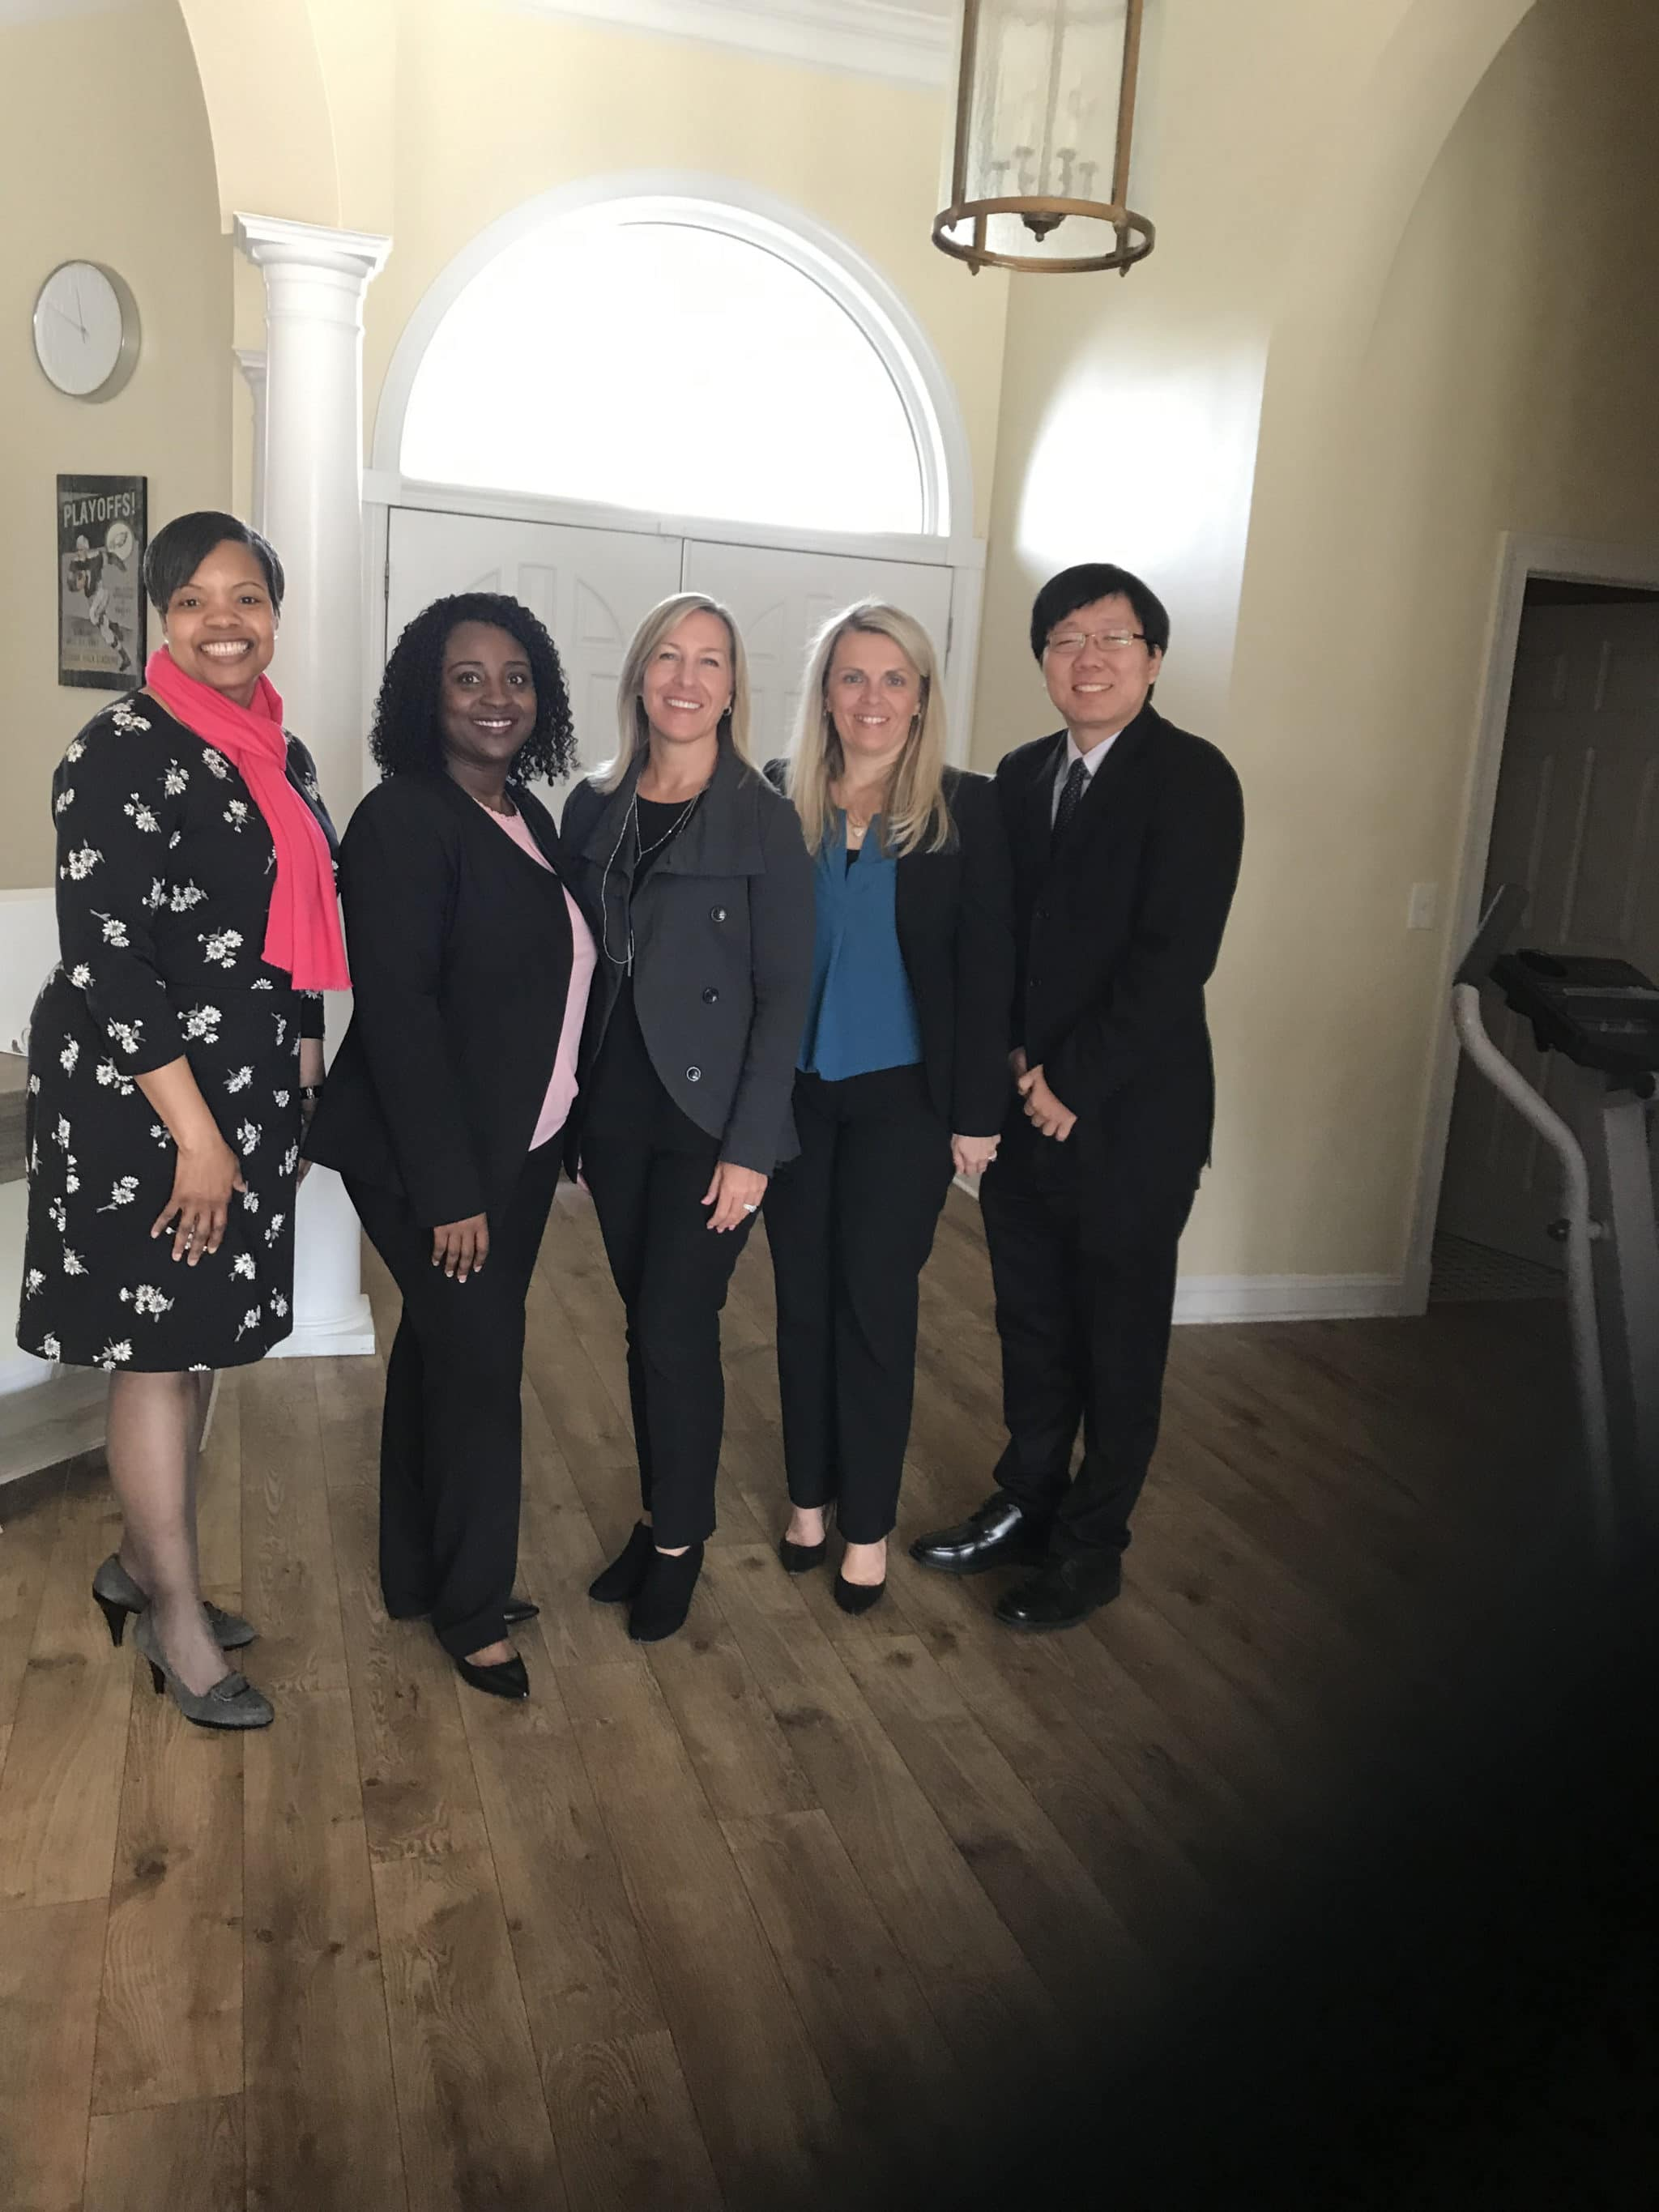 Christine Norbut Beyer, Commissioner of the New Jersey Department of Children and Families, met with executive leadership at one of our homes in New Jersey. Pictured from left to right: Nancy Ward, Program Director; Ida Bormentar, Executive Director; Christine Norbut Beyer, M.S.W.; Commissioner of the New Jersey Department of Children and Families; Svetlana Repic-Qira, Executive Vice President; Andrew Park, Managing Director of Marketing.